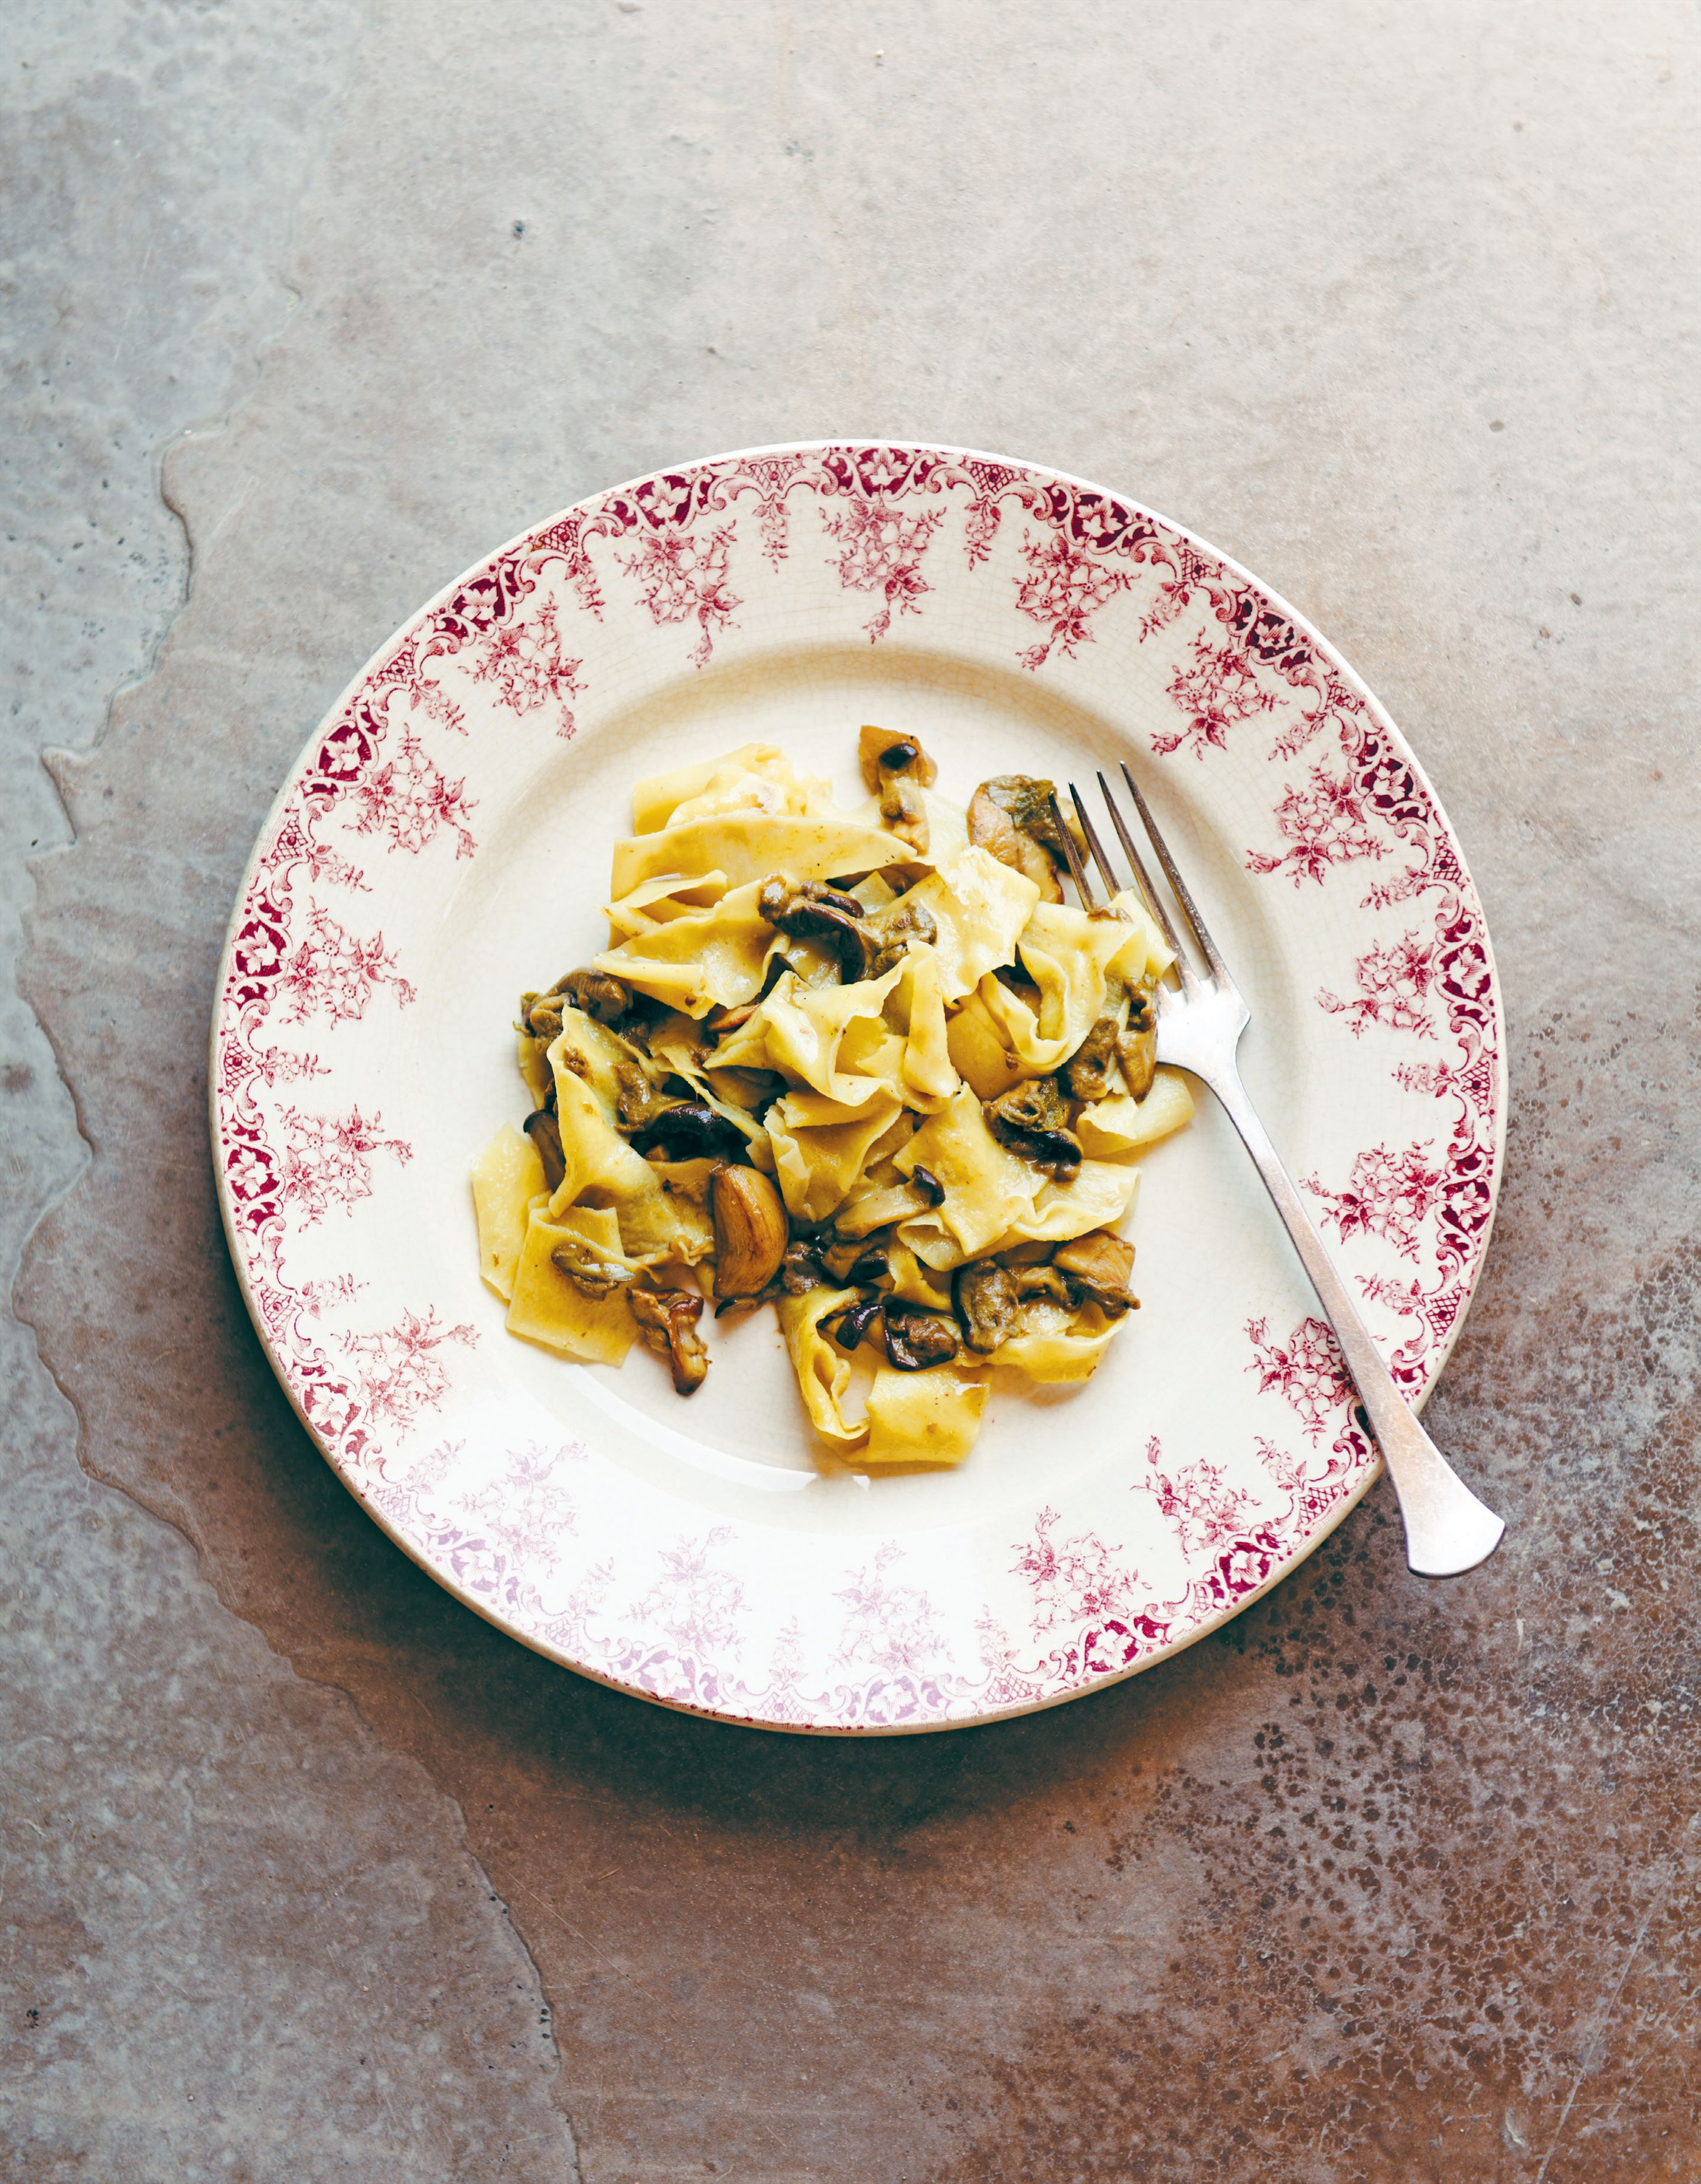 Pappardelle pasta with wild mushrooms